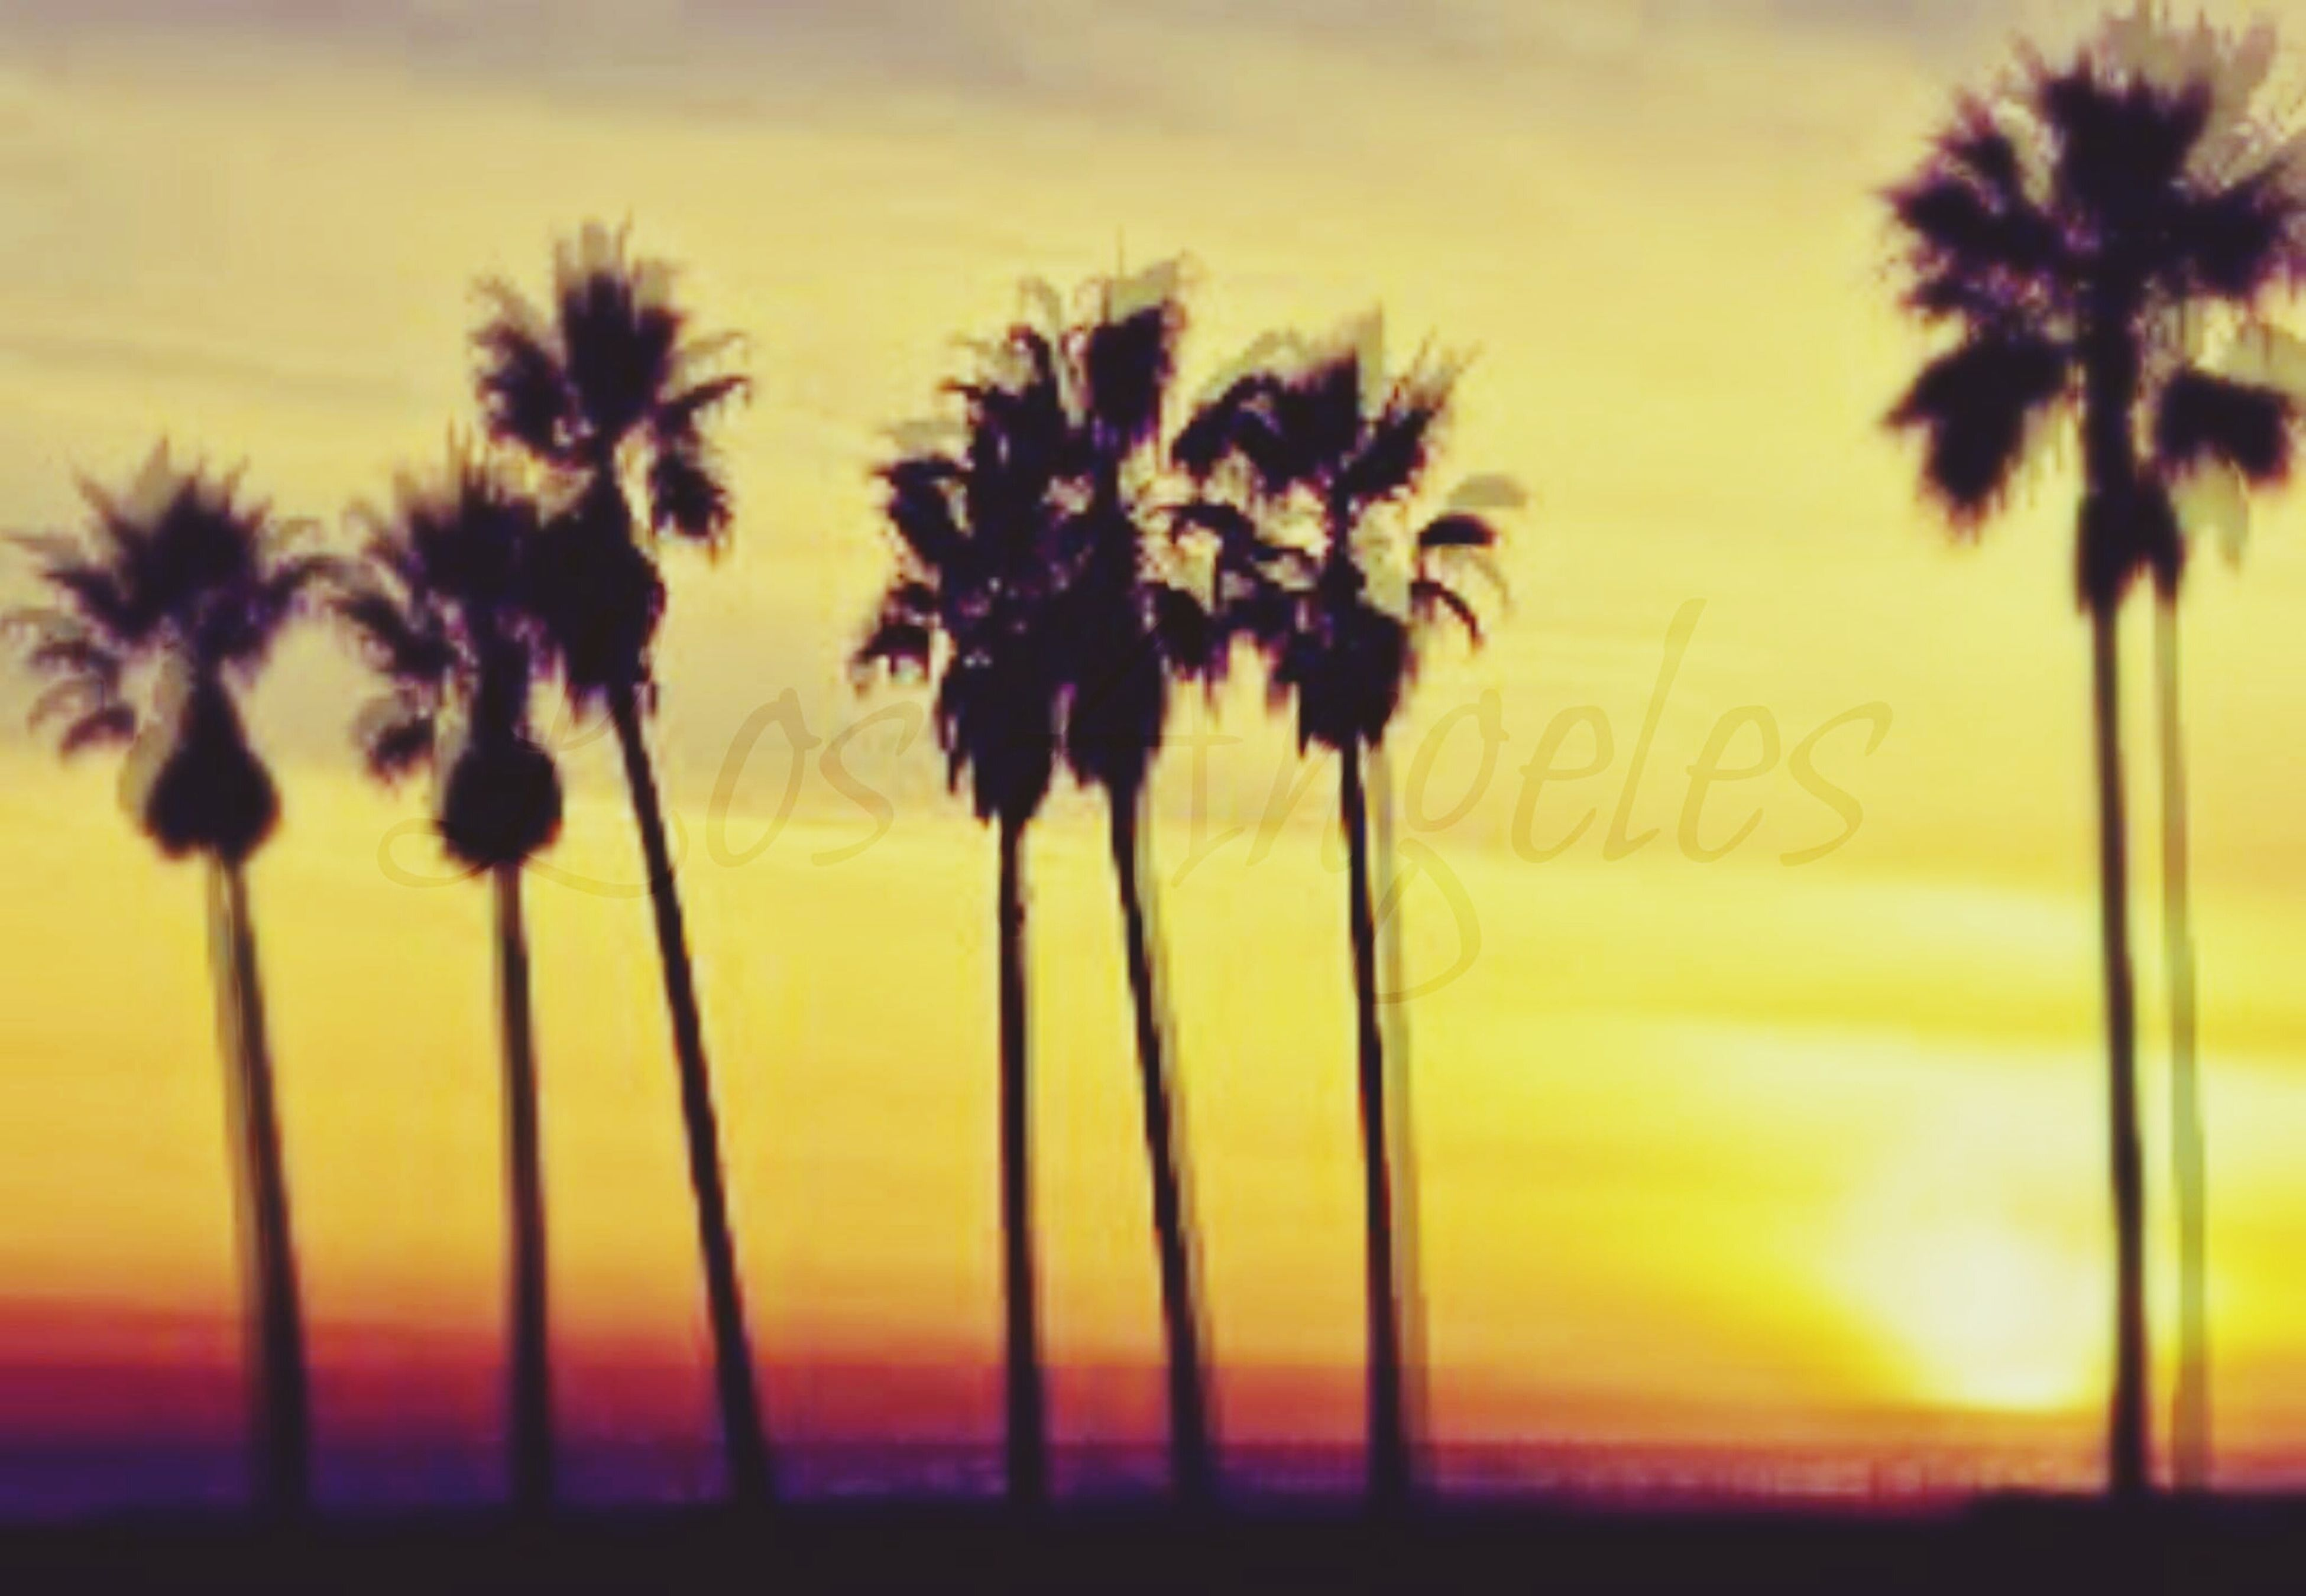 palm tree, sunset, yellow, growth, sky, nature, beauty in nature, orange color, silhouette, tranquility, tree, no people, outdoors, tree trunk, scenics, field, tranquil scene, focus on foreground, stem, plant